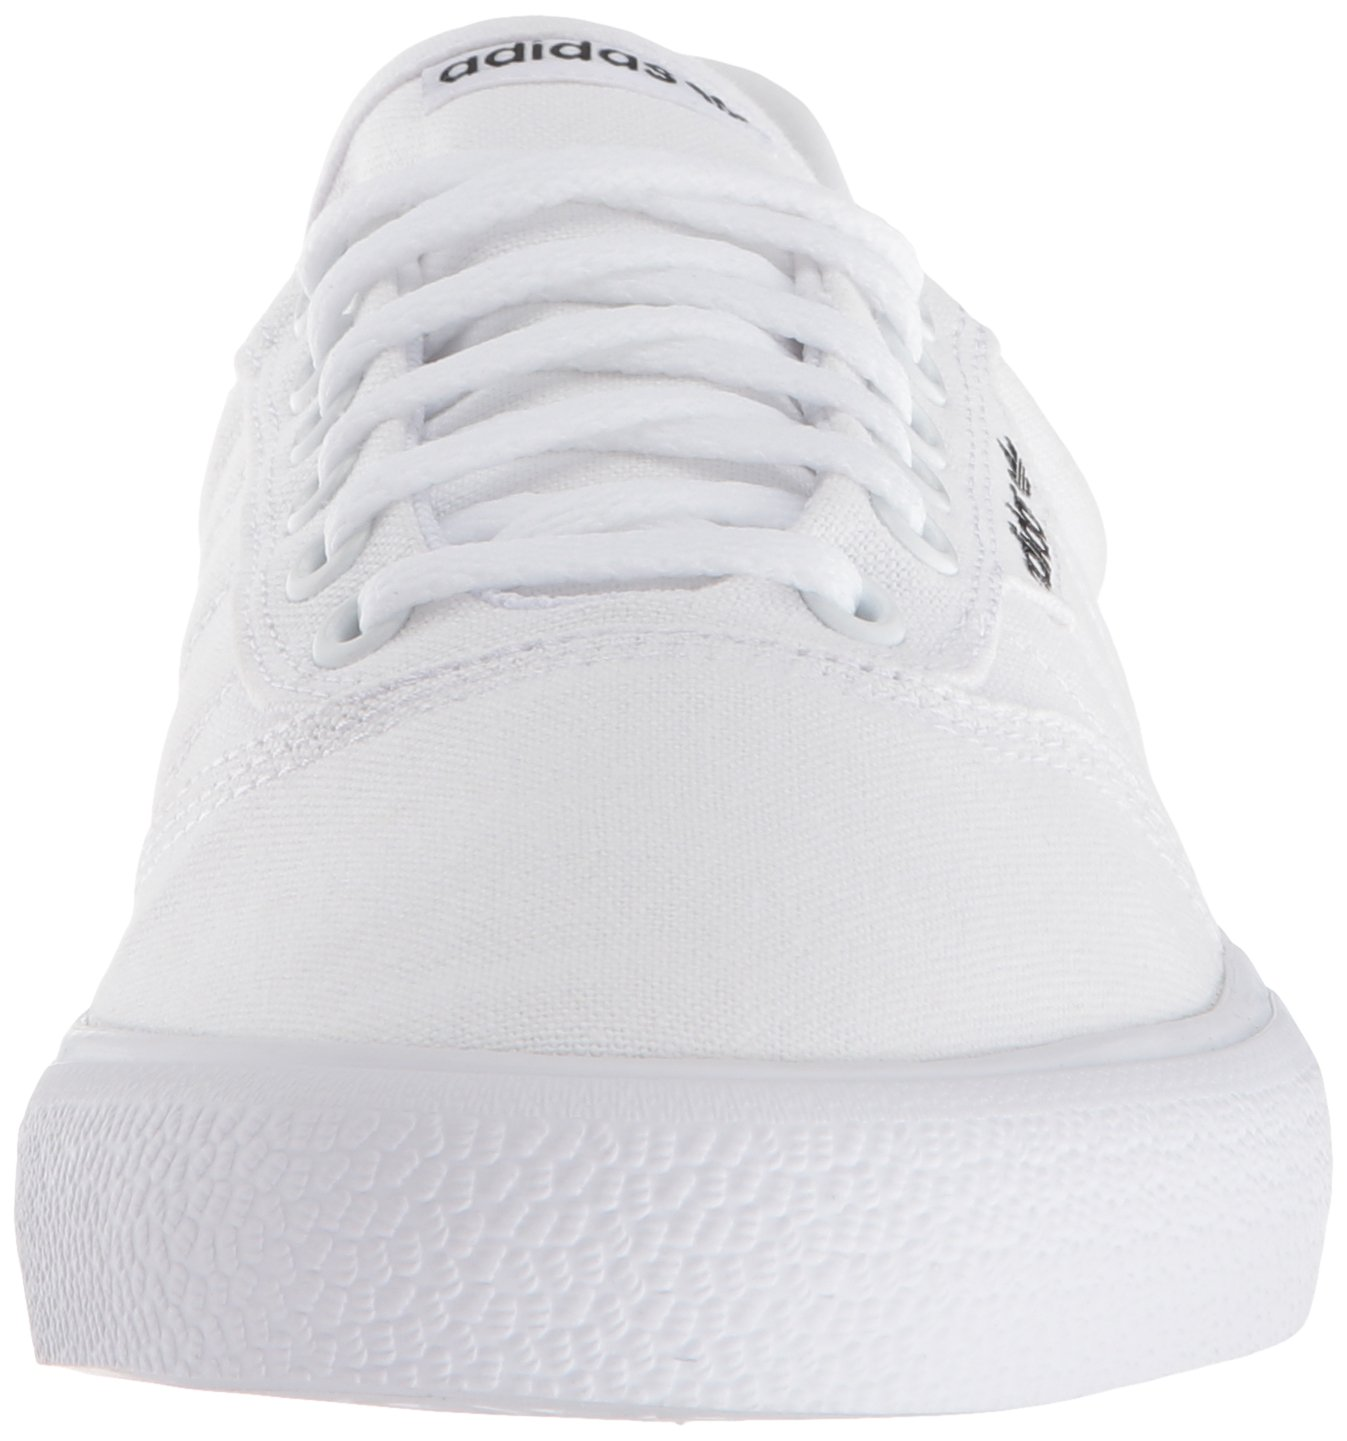 adidas Originals Unisex-adult 3 MC Skate Shoe White/Gold Metallic, 5.5 M US by adidas Originals (Image #4)